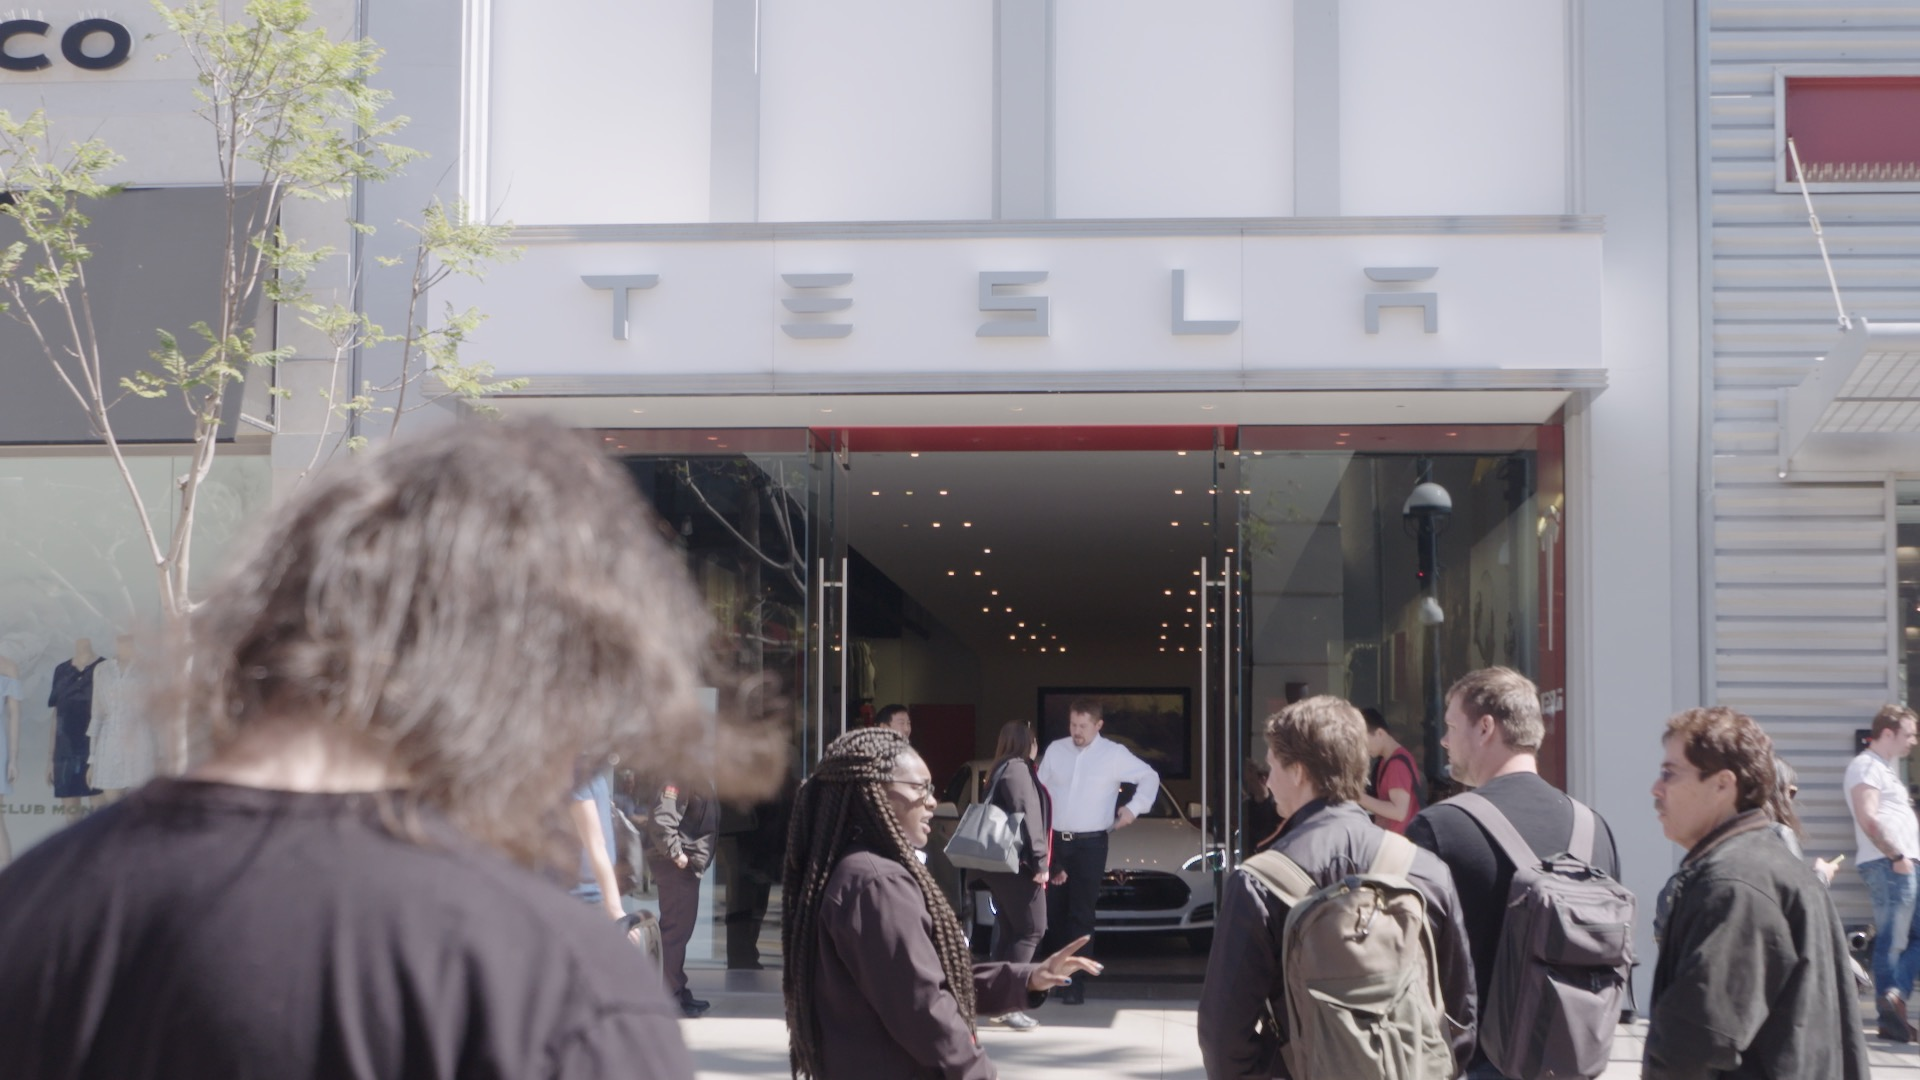 Hundreds line up outside Tesla stores to pre-order Model 3